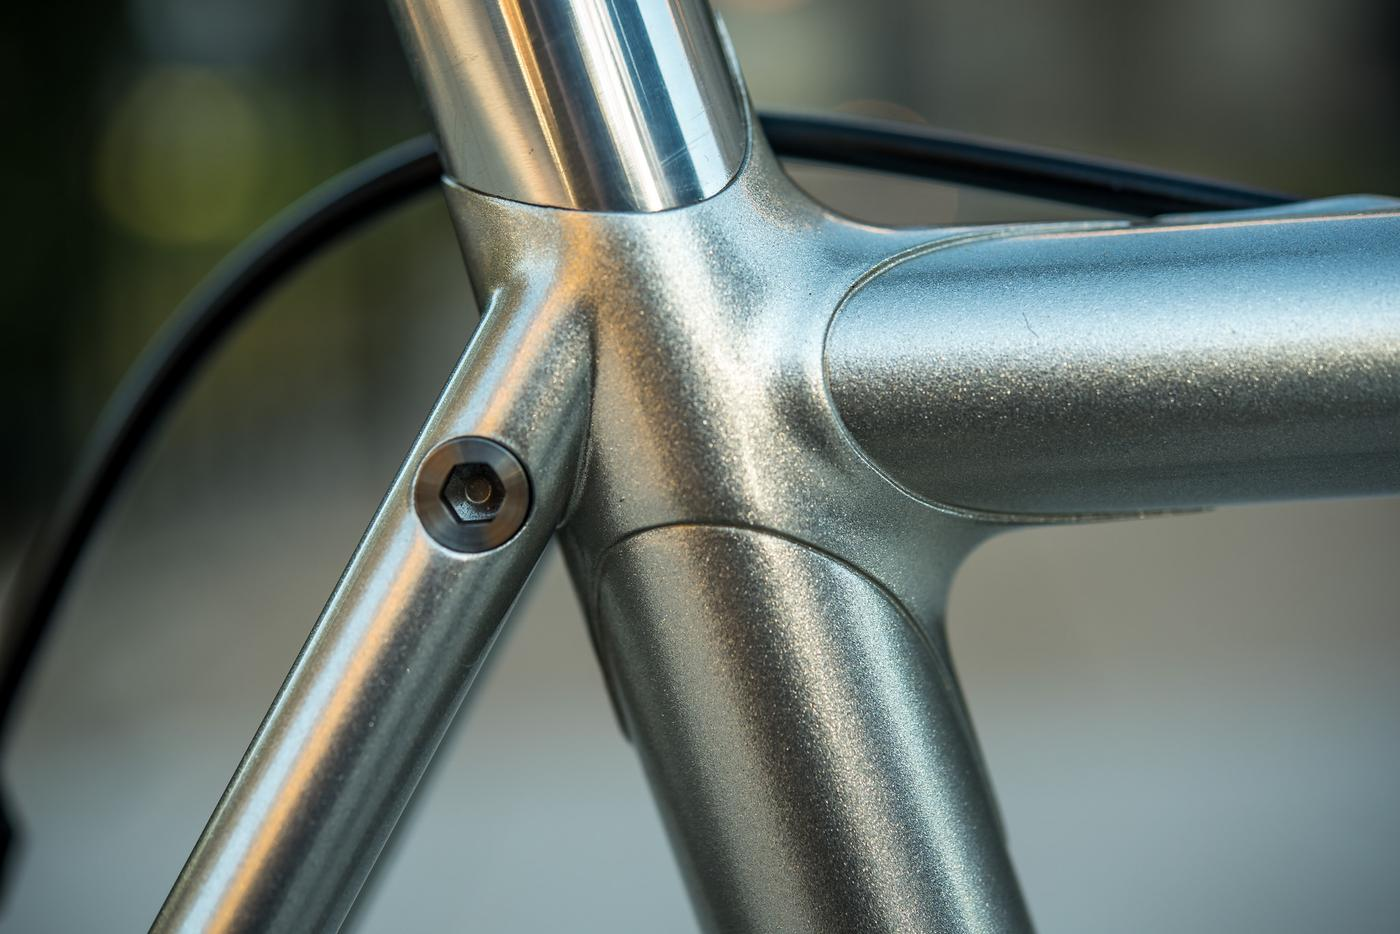 Bishop Bikes: Karesna's Classic Fillet and Lugged Road Bike